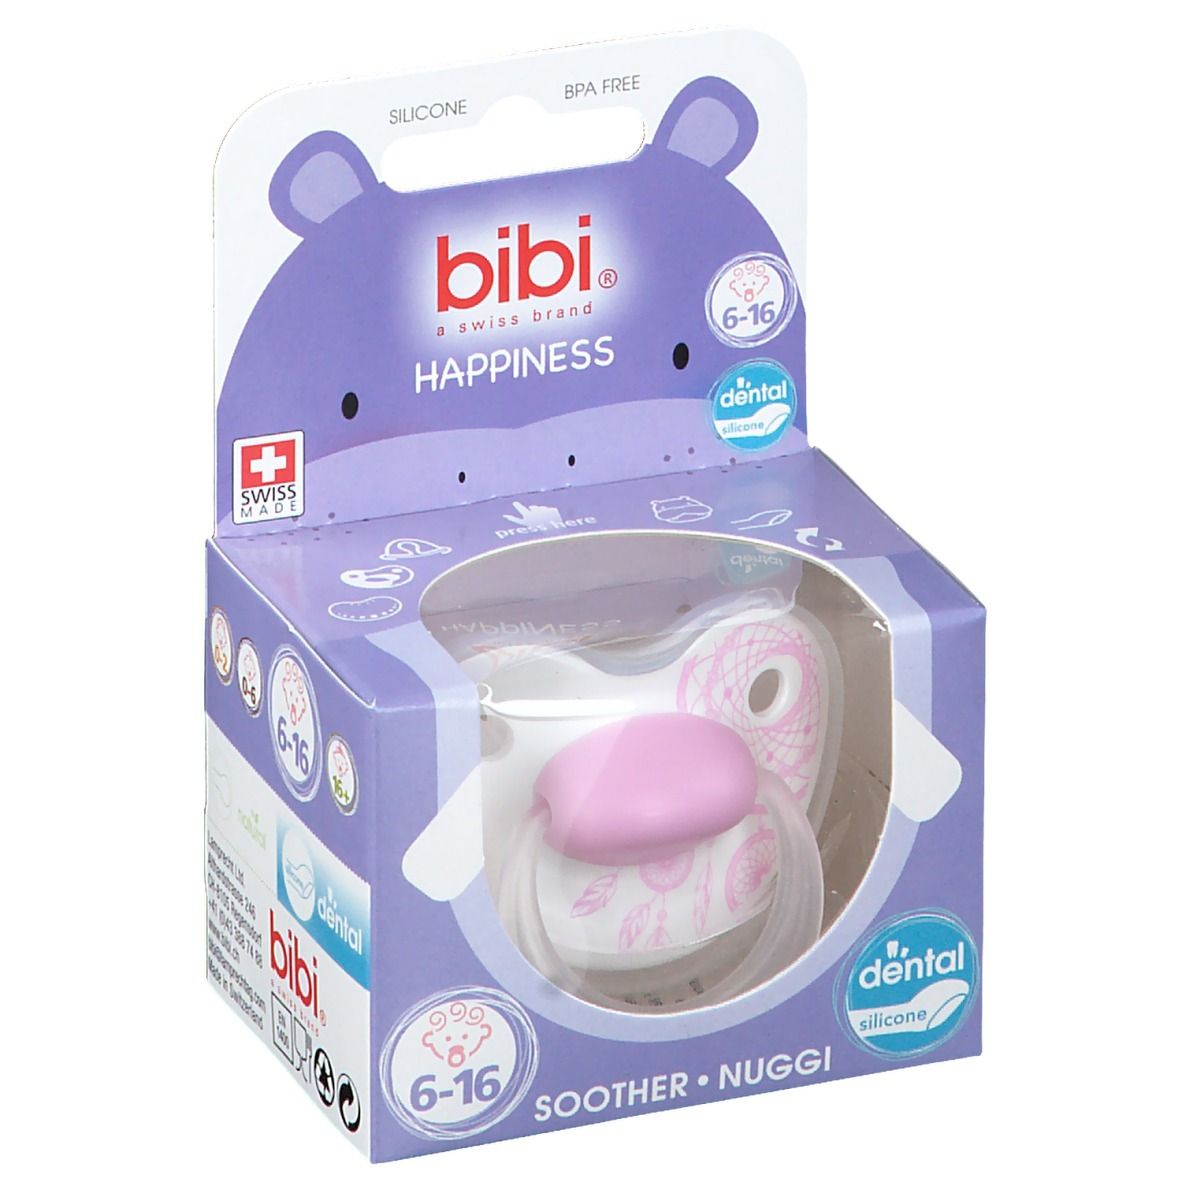 bibi® Happiness Sucette Dental Dreamcatcher 6-16 mois